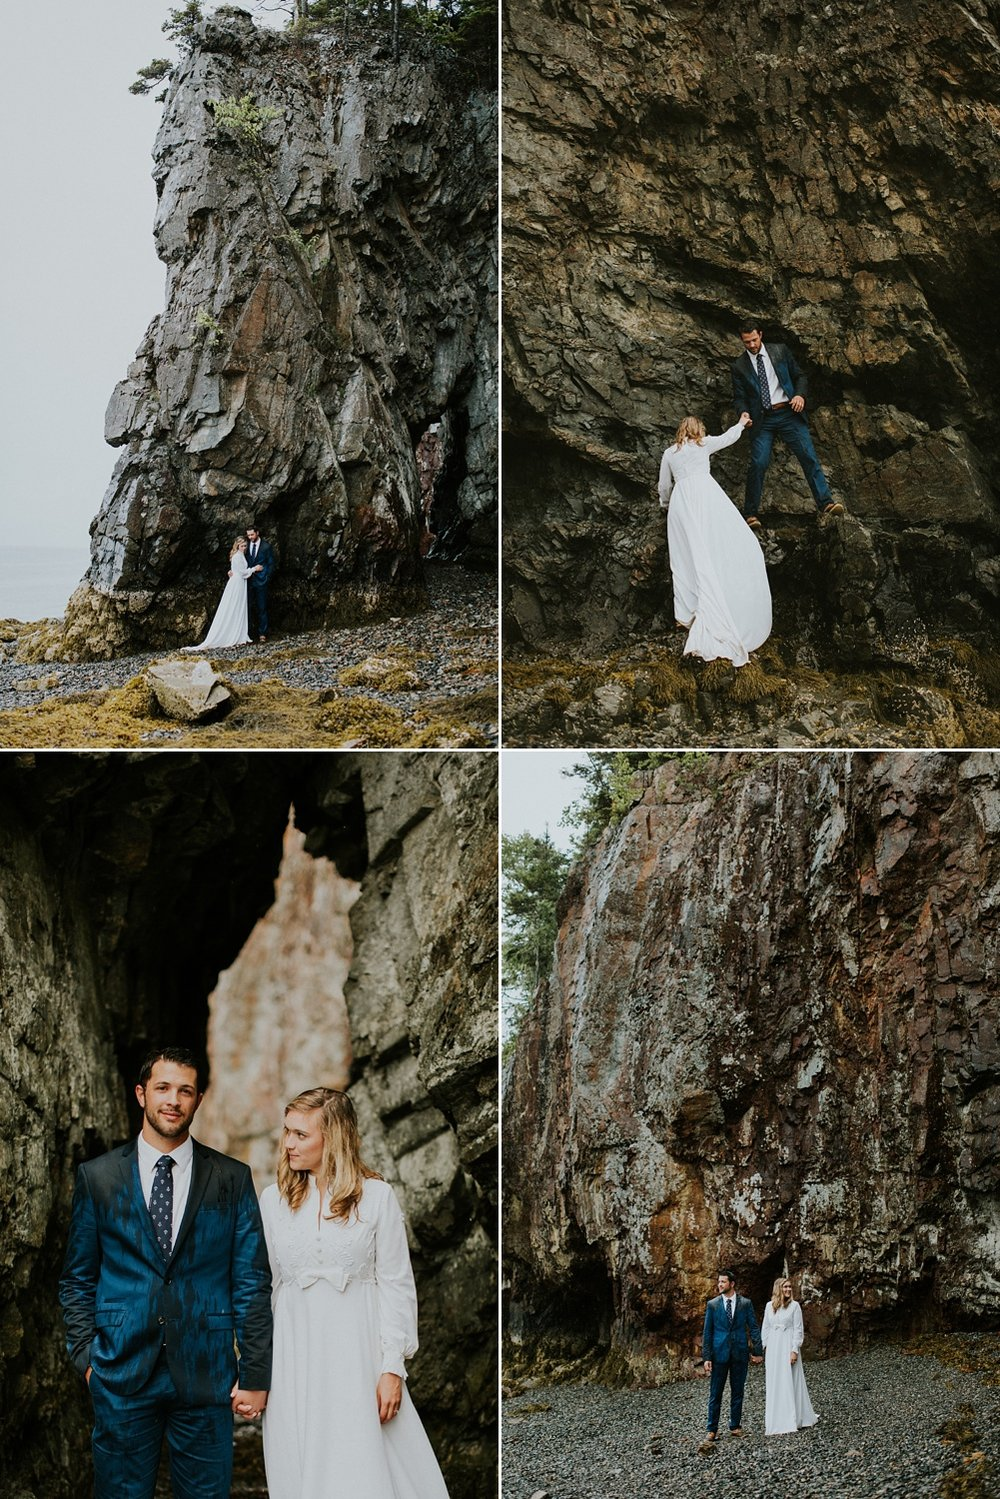 Maine and Destination Wedding Photographer | Jamie Mercurio_0062.jpg